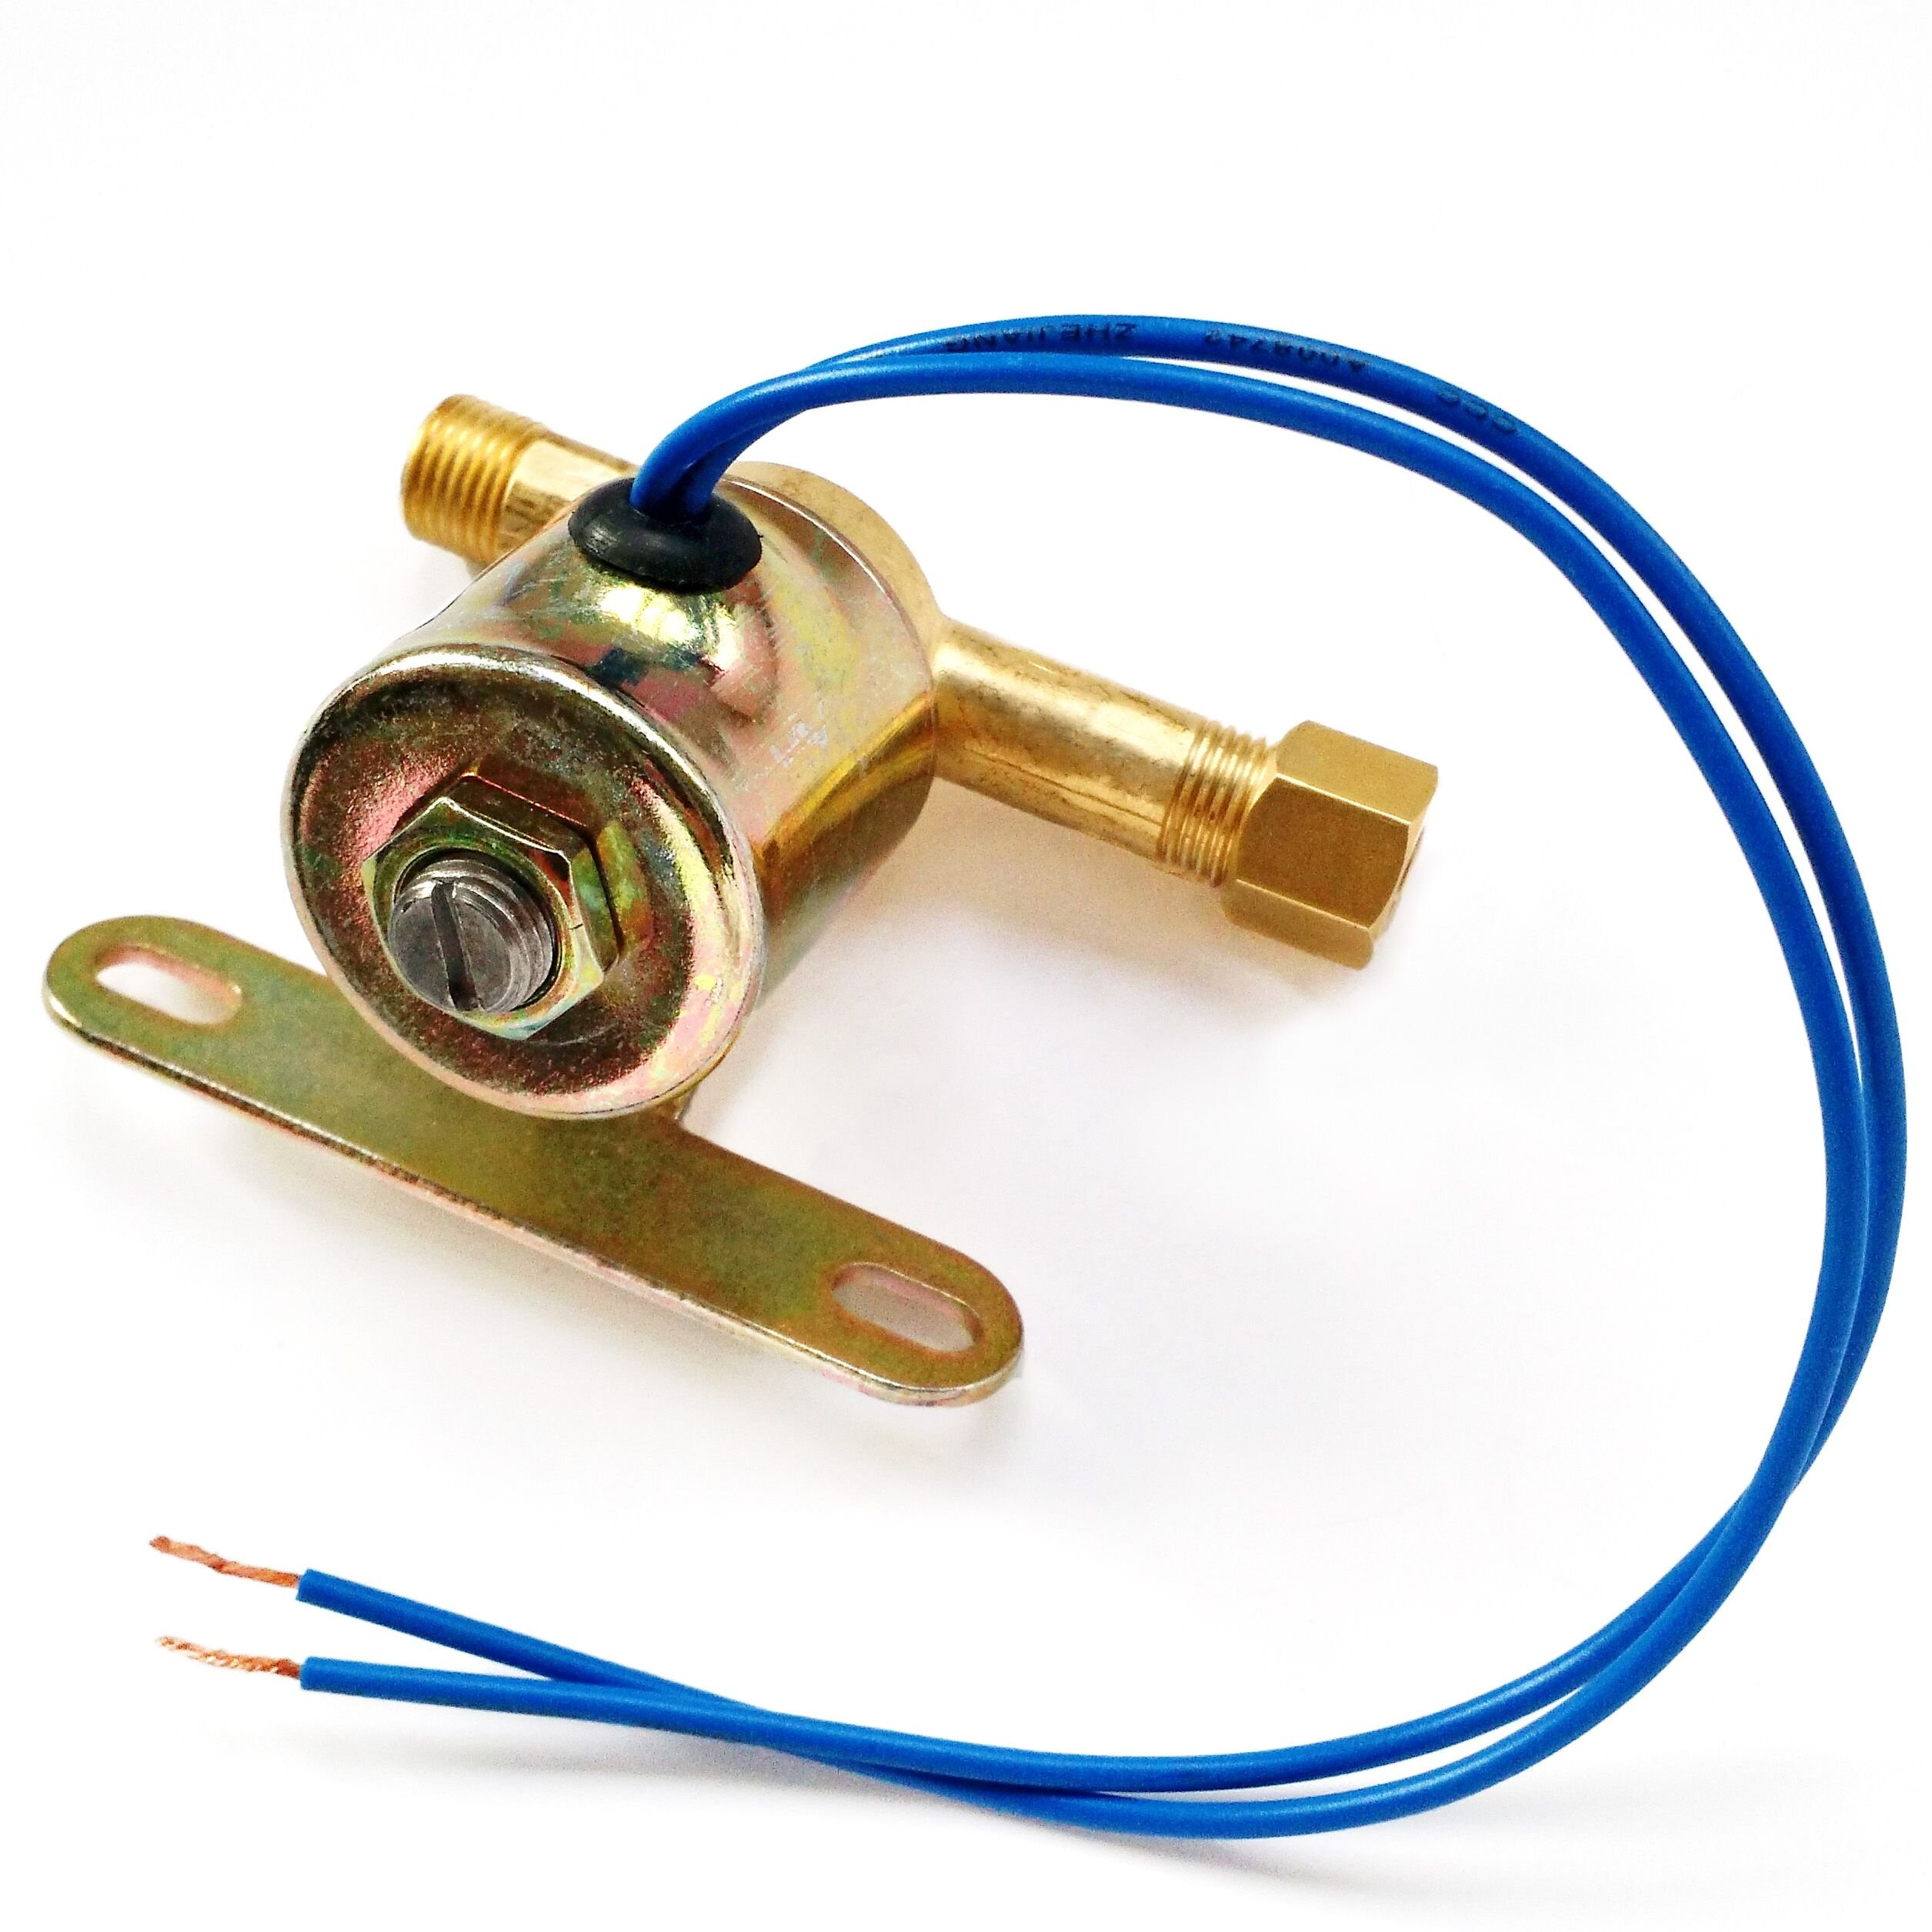 Replacement 4040 Humidifier Valve for Aprilaire Solenoid Valve, Part No. B2015-S85 | 24 Volts | 2.3 Watts | 60 HZ By: Eagleggo